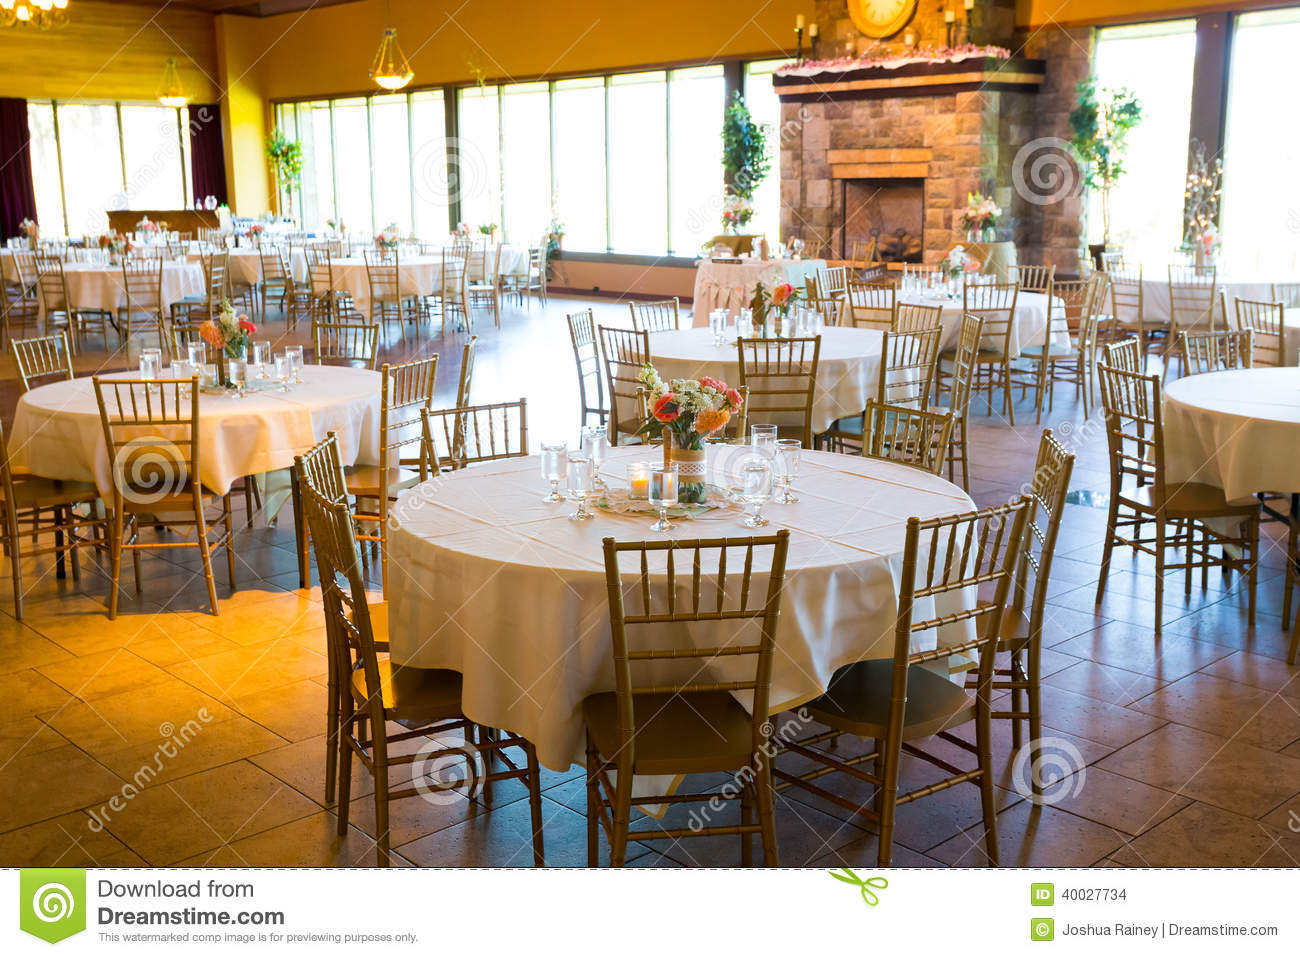 Indoor Wedding Venue Royalty Free Stock Photo: Wedding Reception Tables And Seating Stock Photo